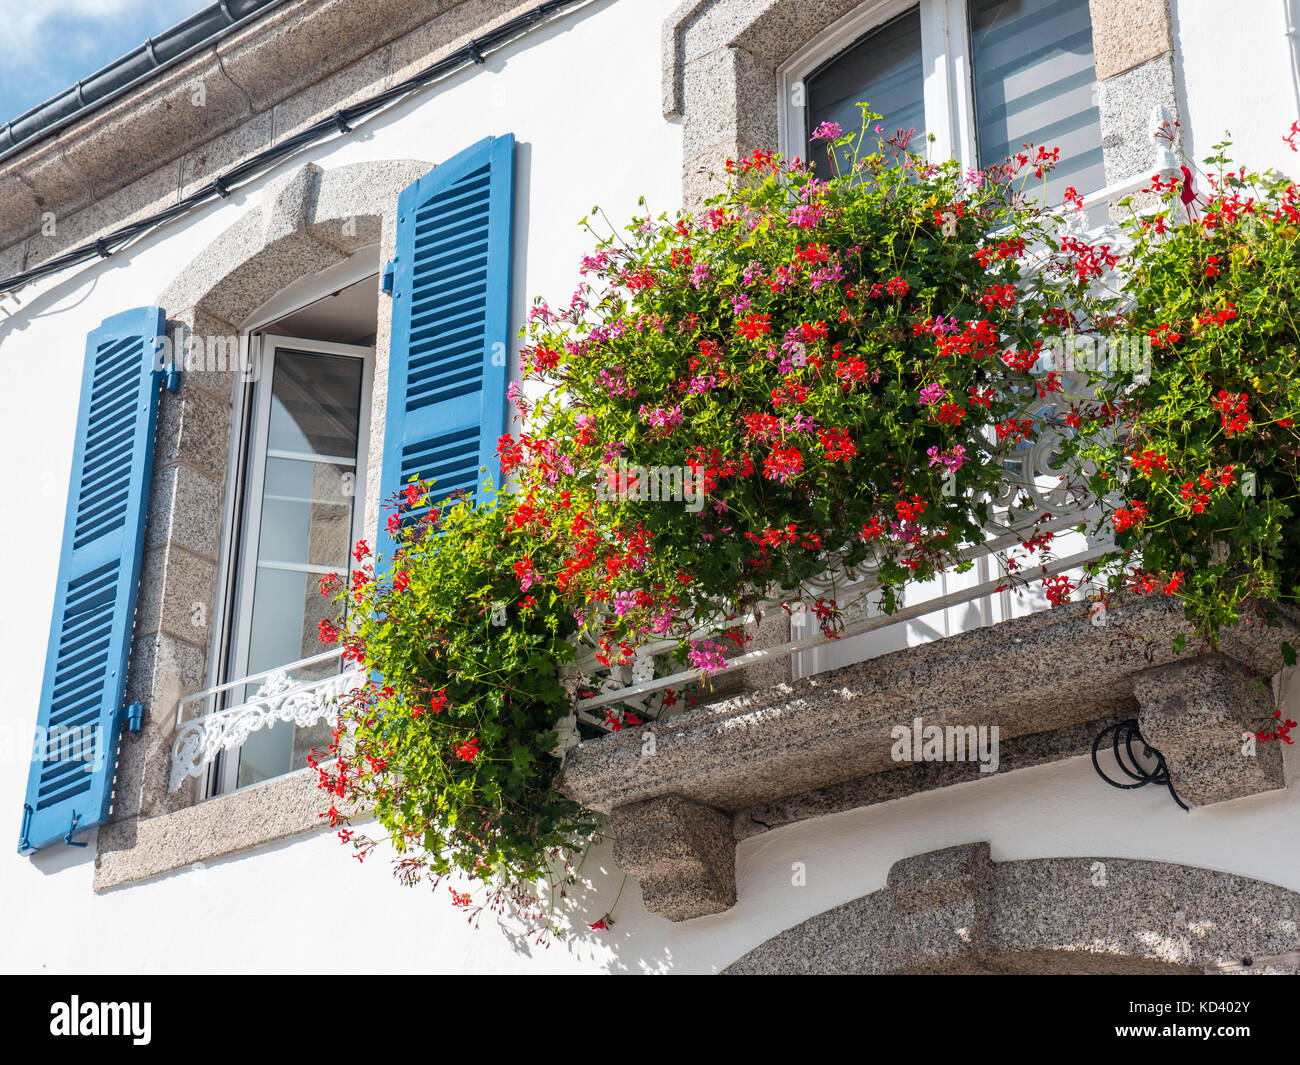 French Gite B&B with typical blue shuttered window and pelargonium floral display window box Stock Photo